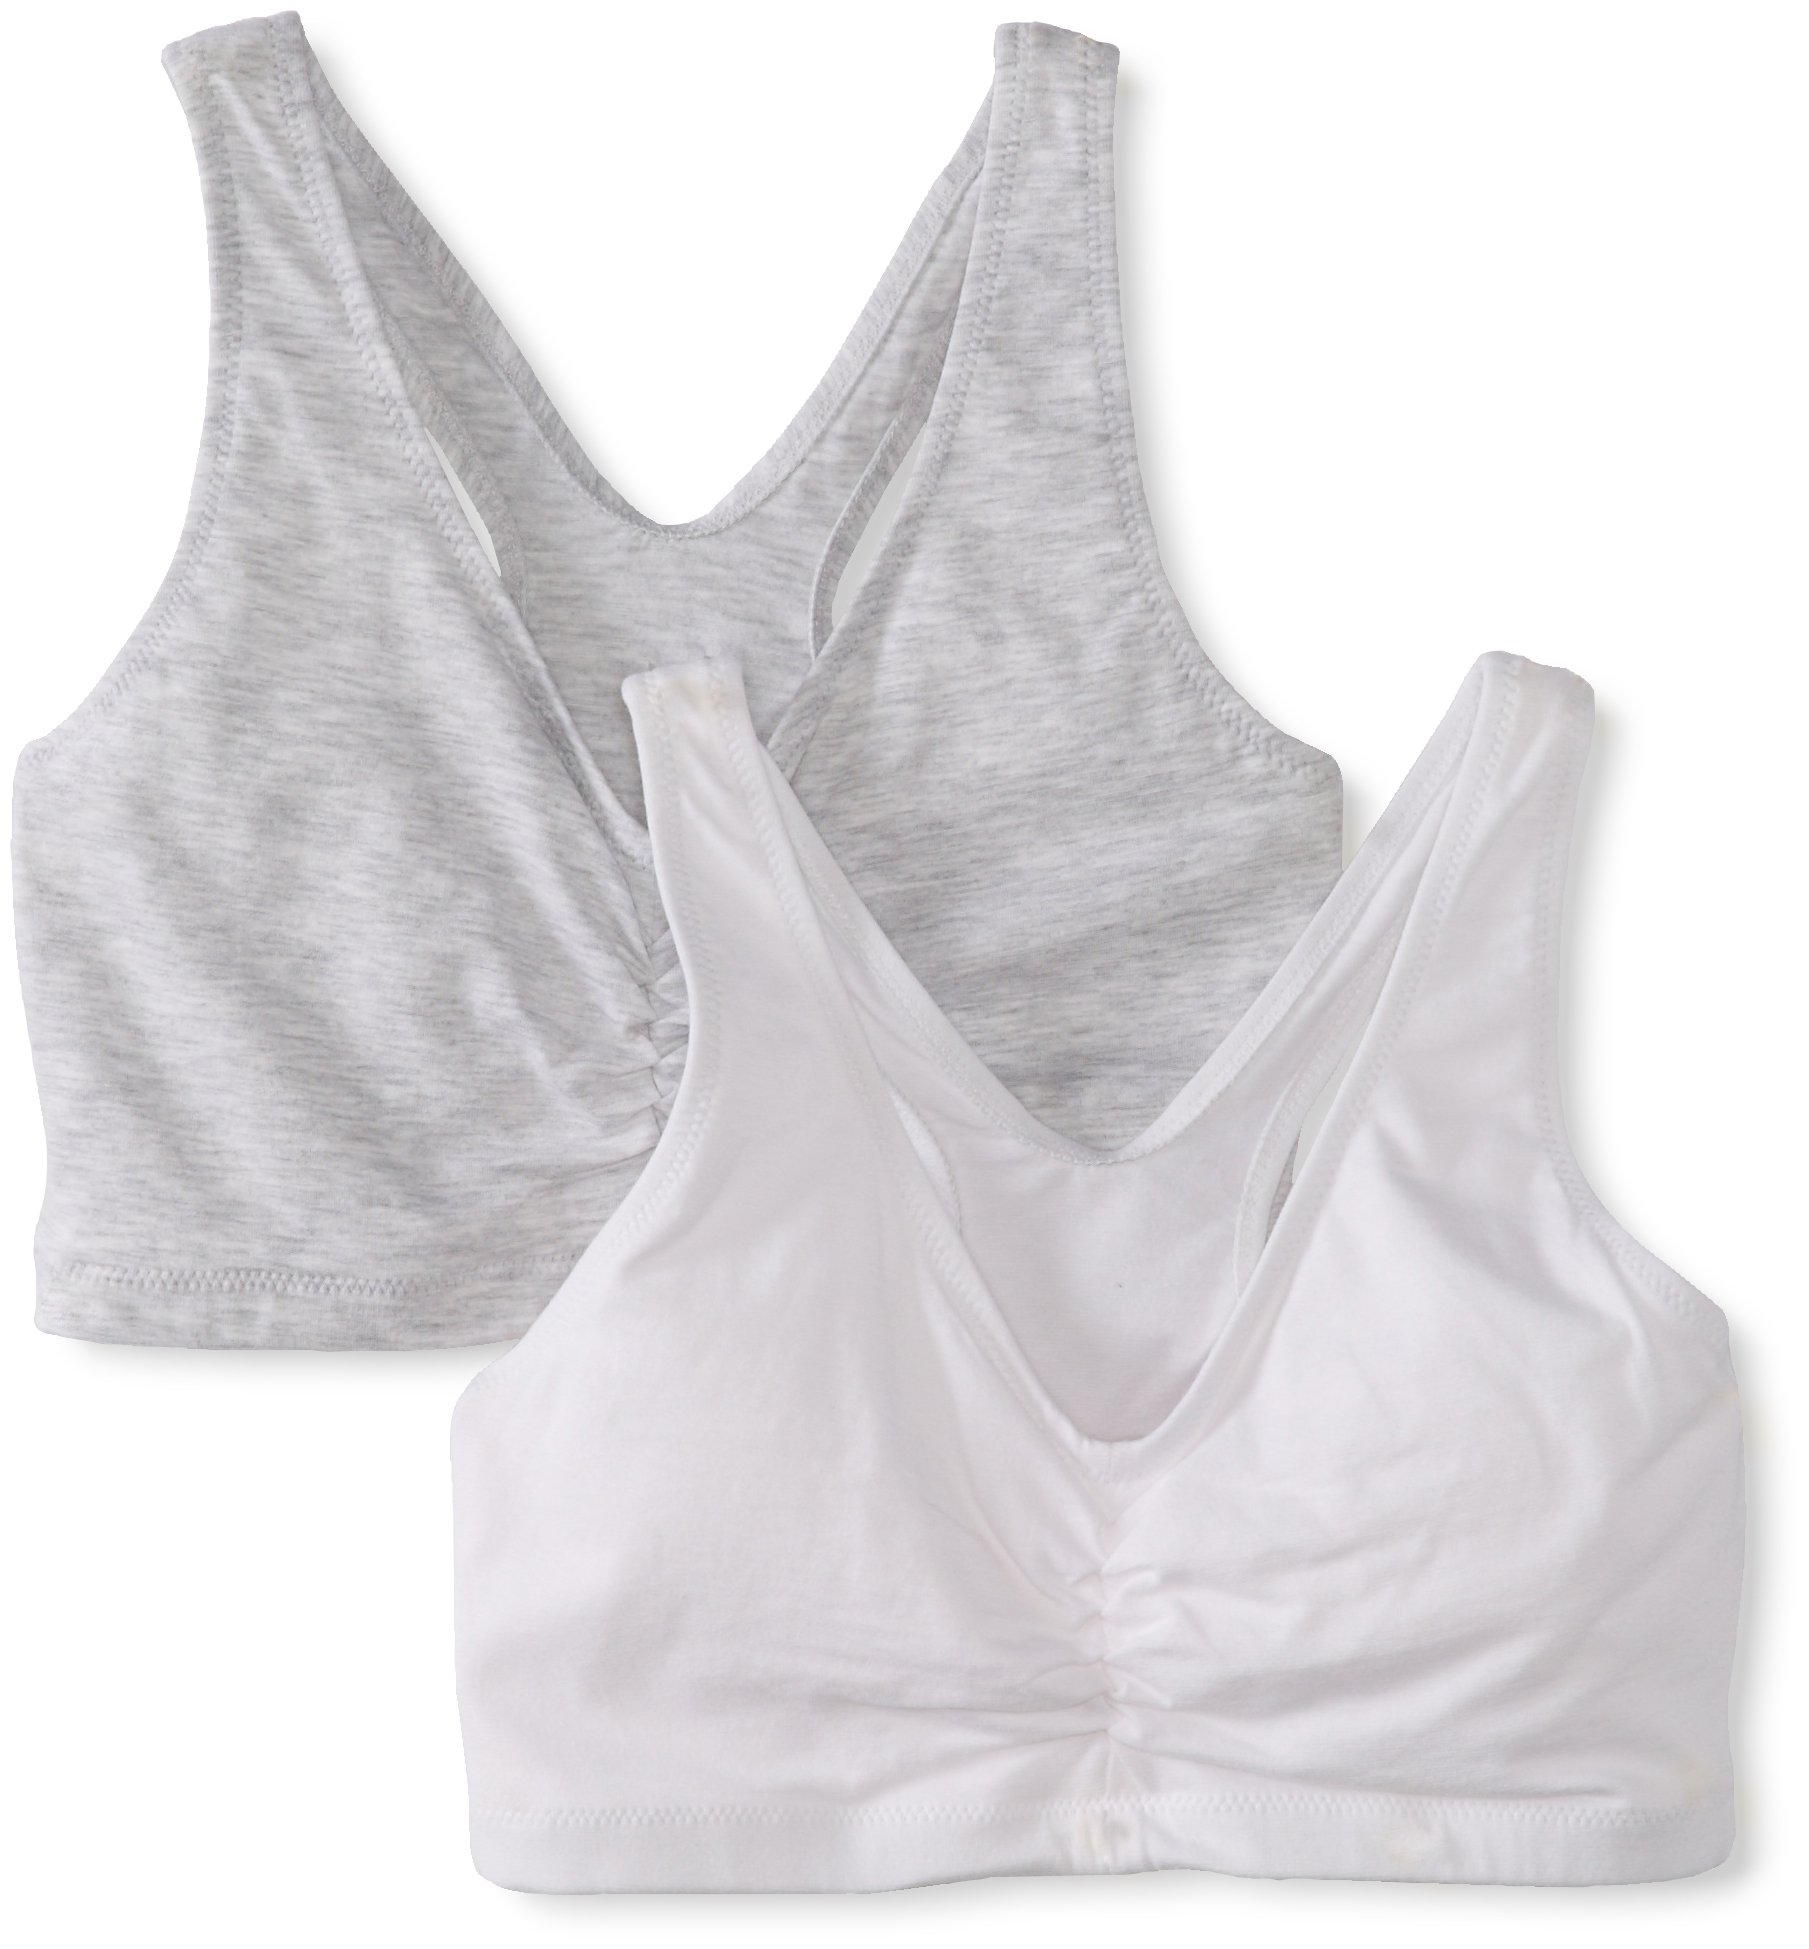 Hanes Women's Comfort-Blend Flex Fit Pullover Bra (Pack of 2),Heather Grey/White,Medium